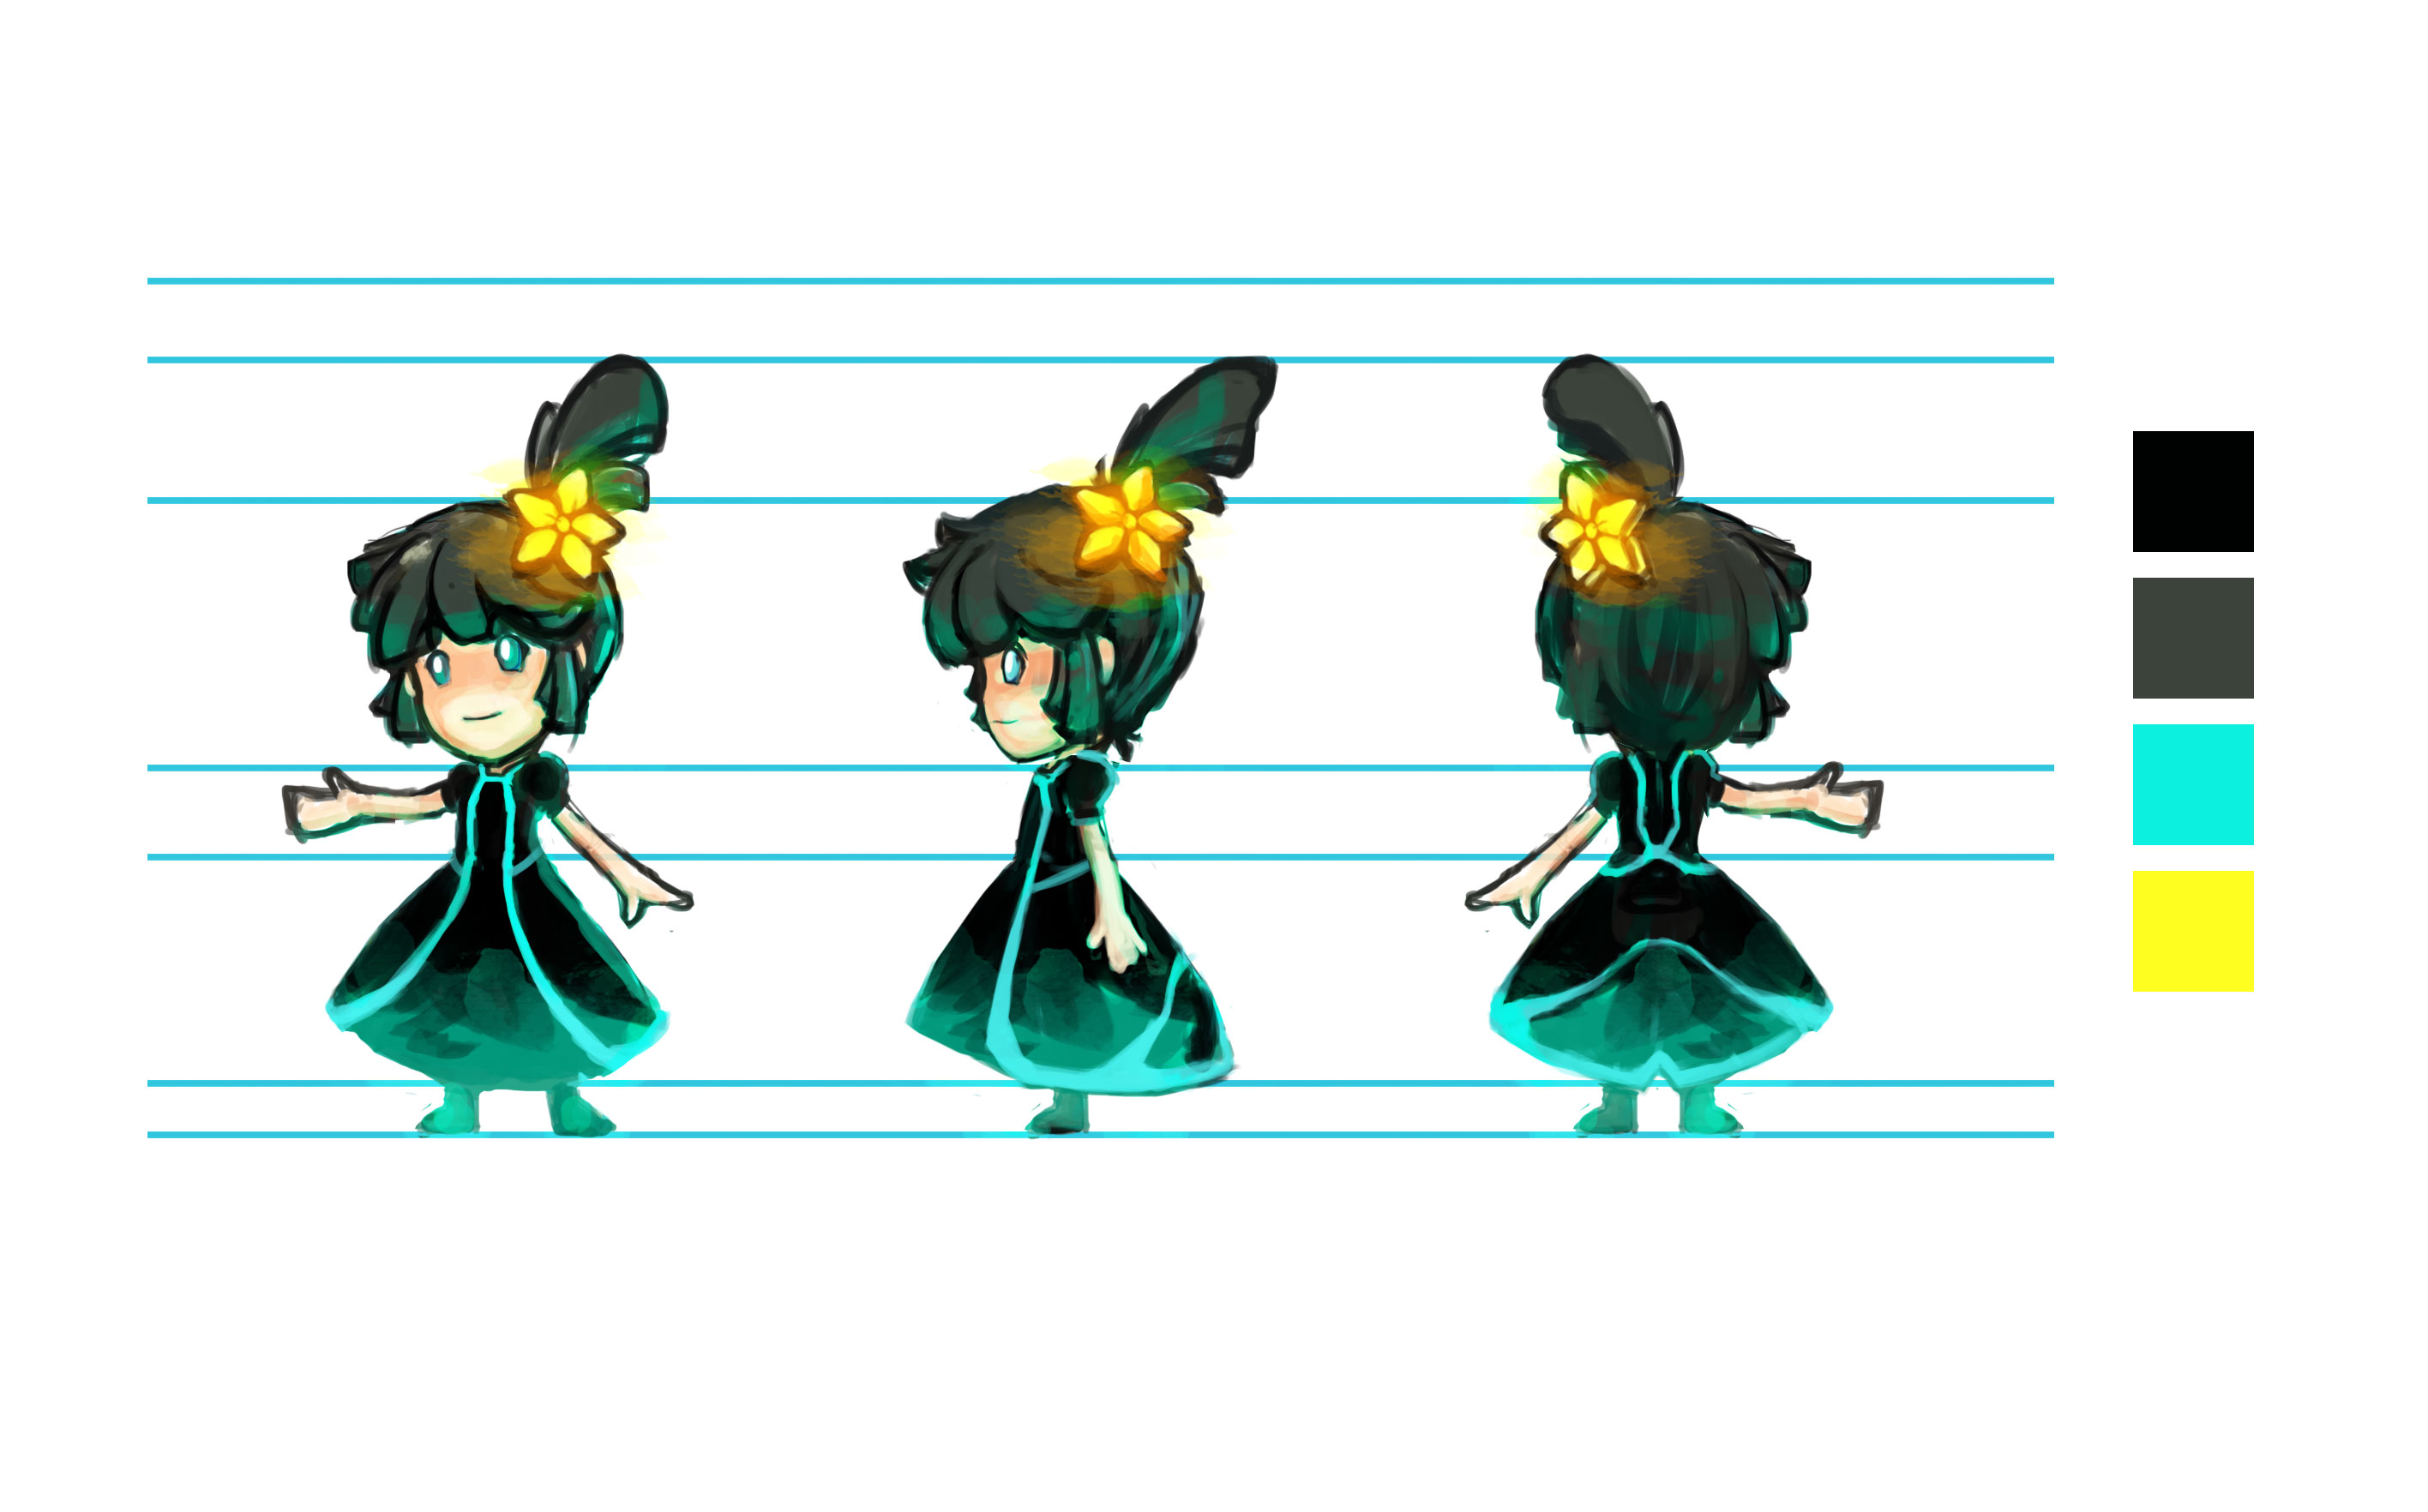 littleshadow_turnaround.jpg